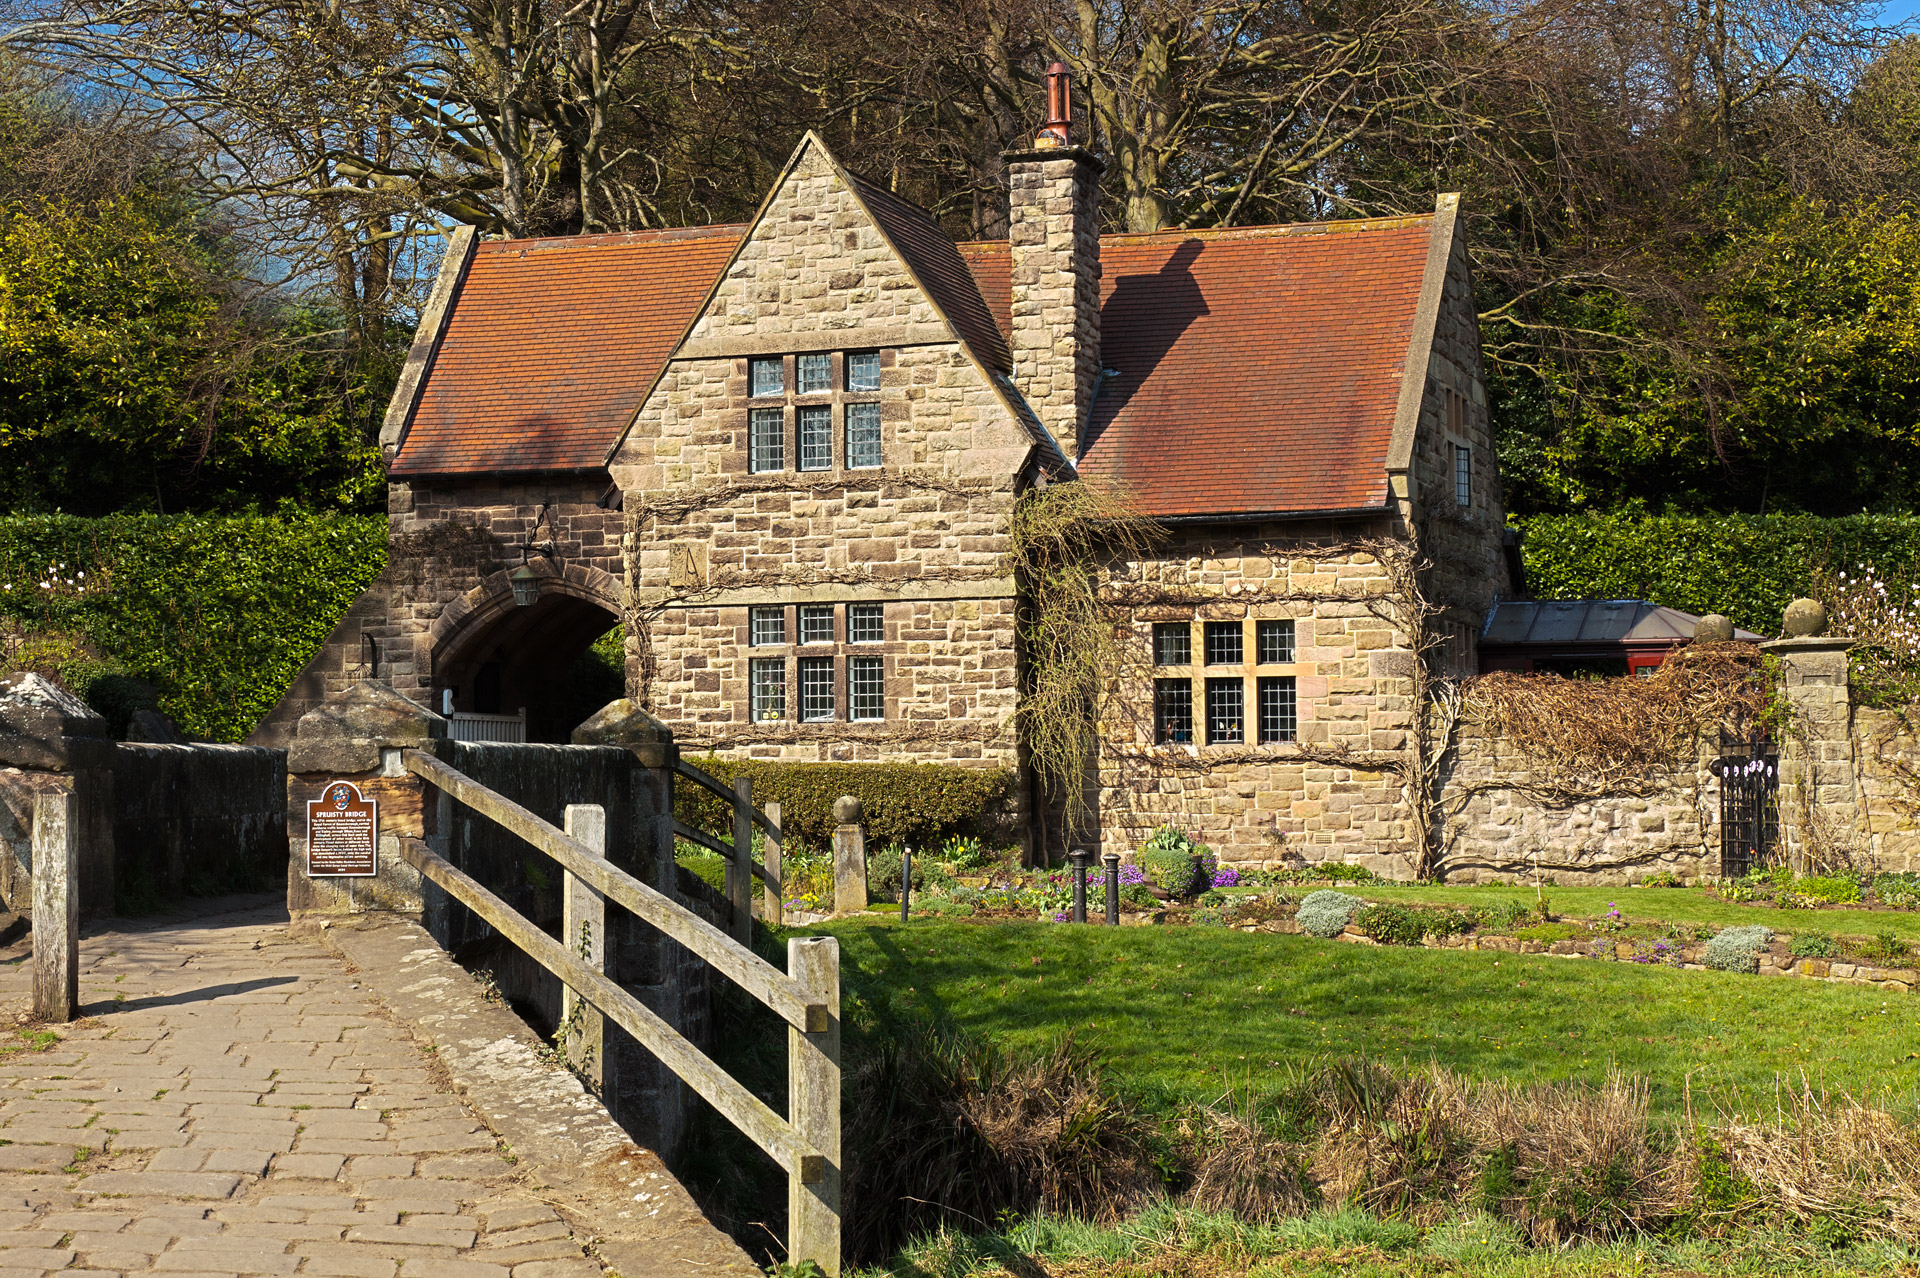 timber treatment in old houses